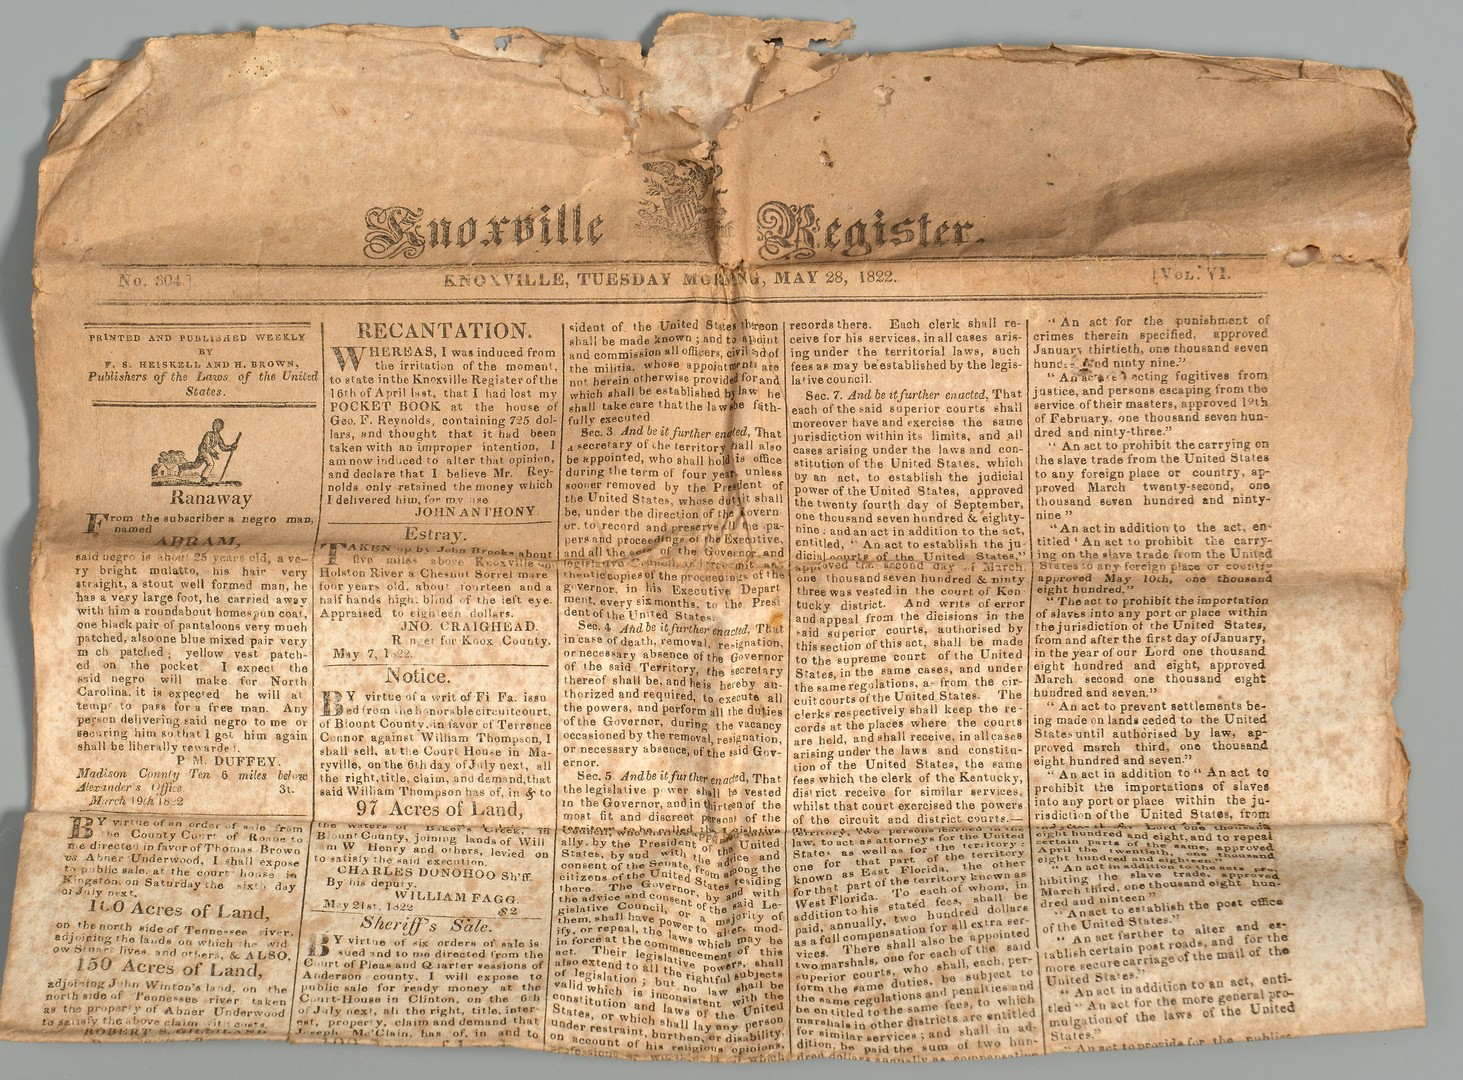 Lot 206: Early Knox Co., TN document archive relating to TN Militia, Gov. signed item